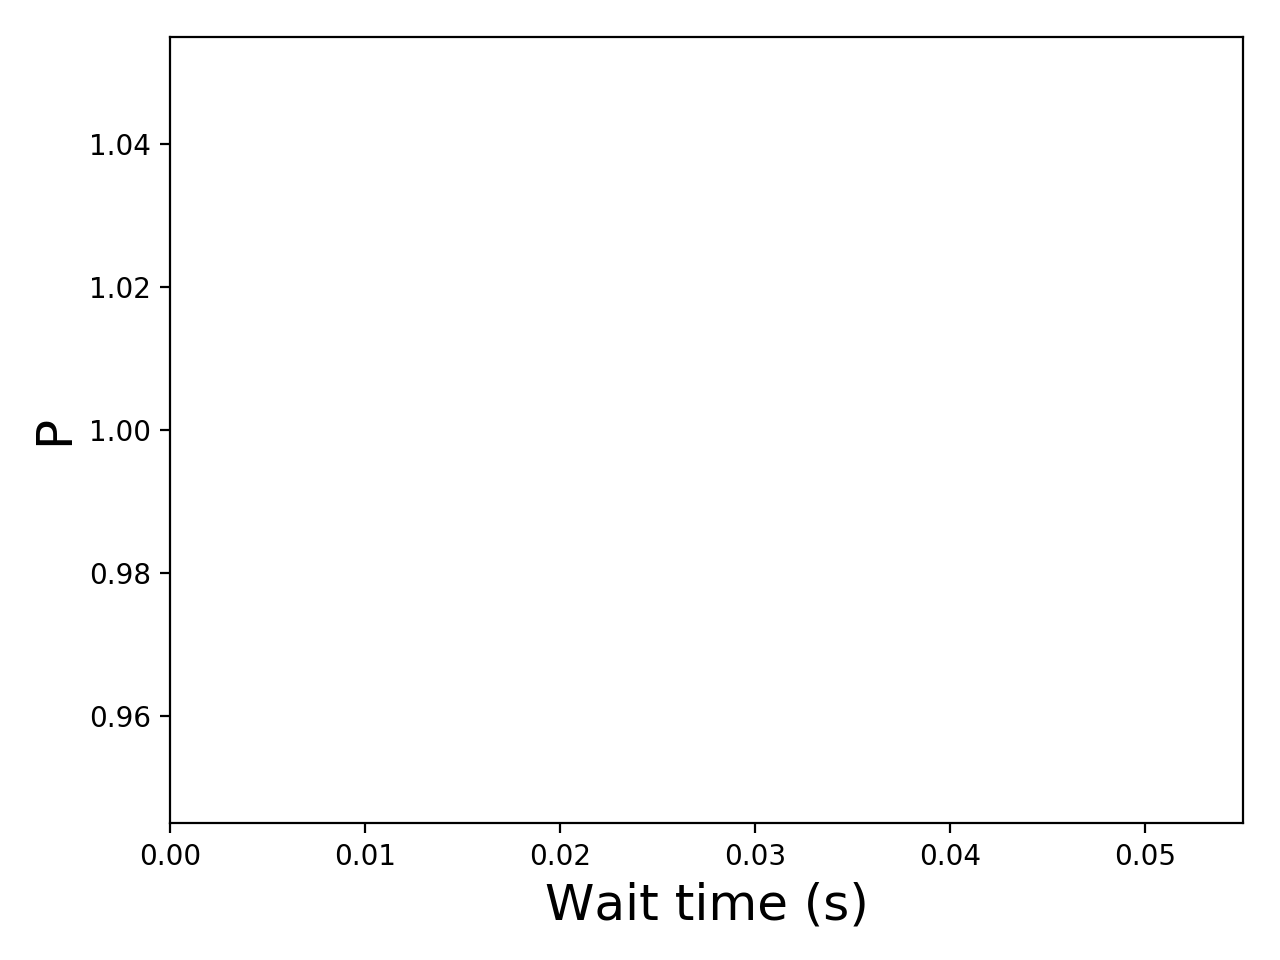 Task wait time CDF graph for the askalon-new_ee48 trace.